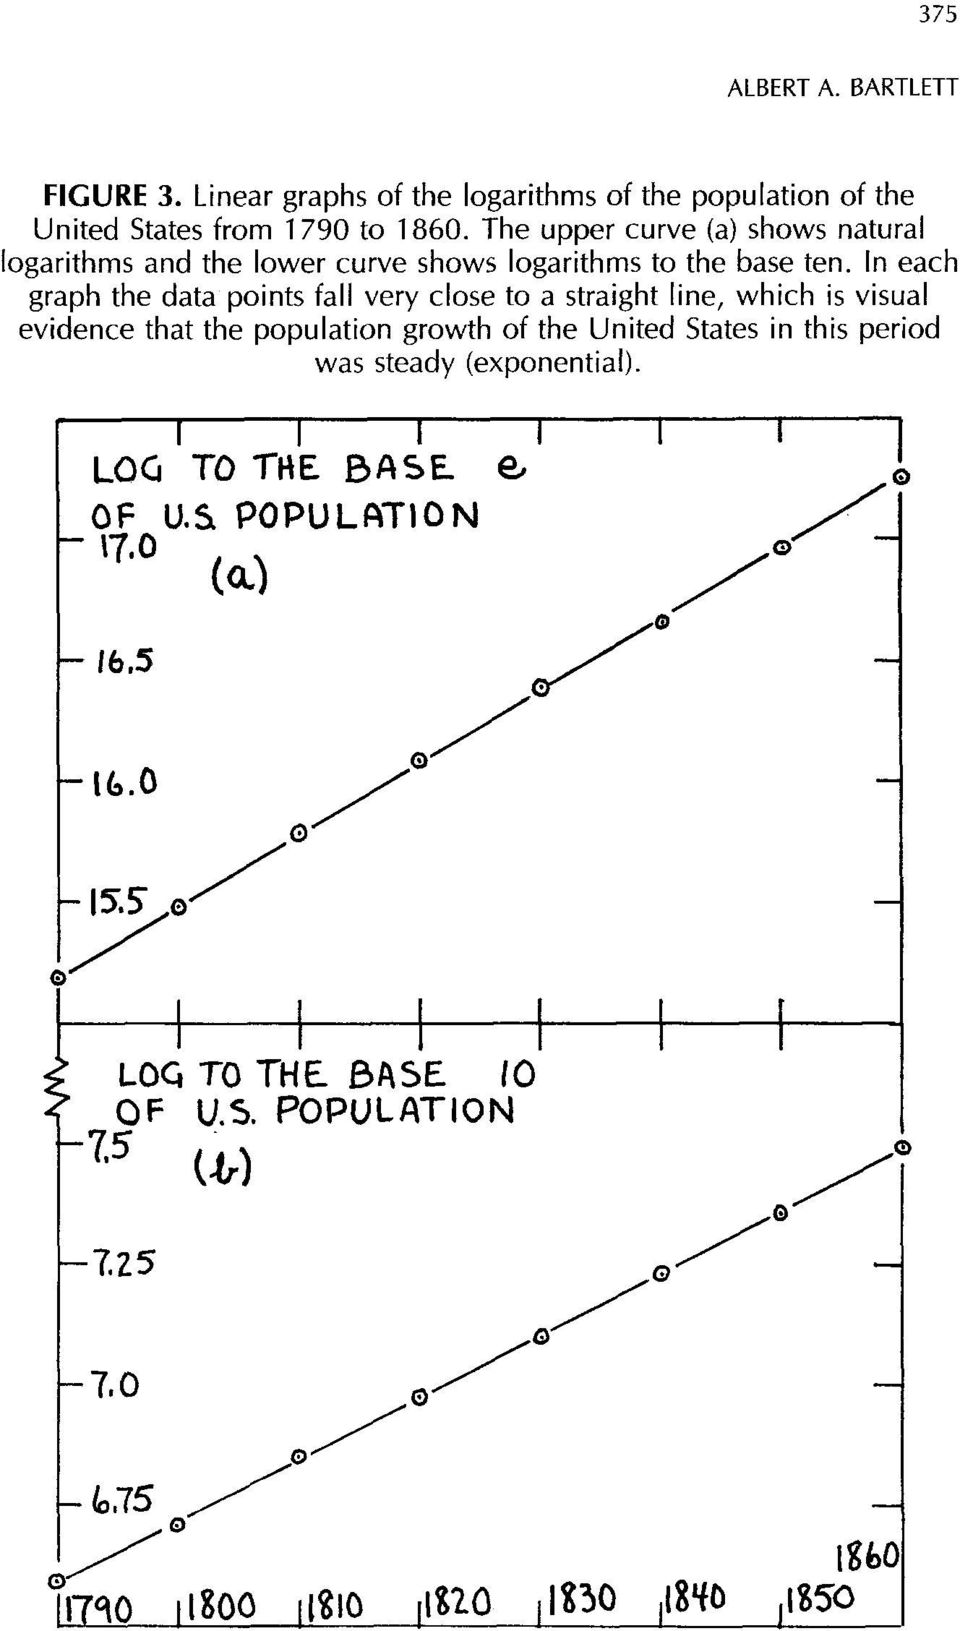 n each graph the data points fall very close to a straight line, which is visual evidence that the population growth of the United States in this